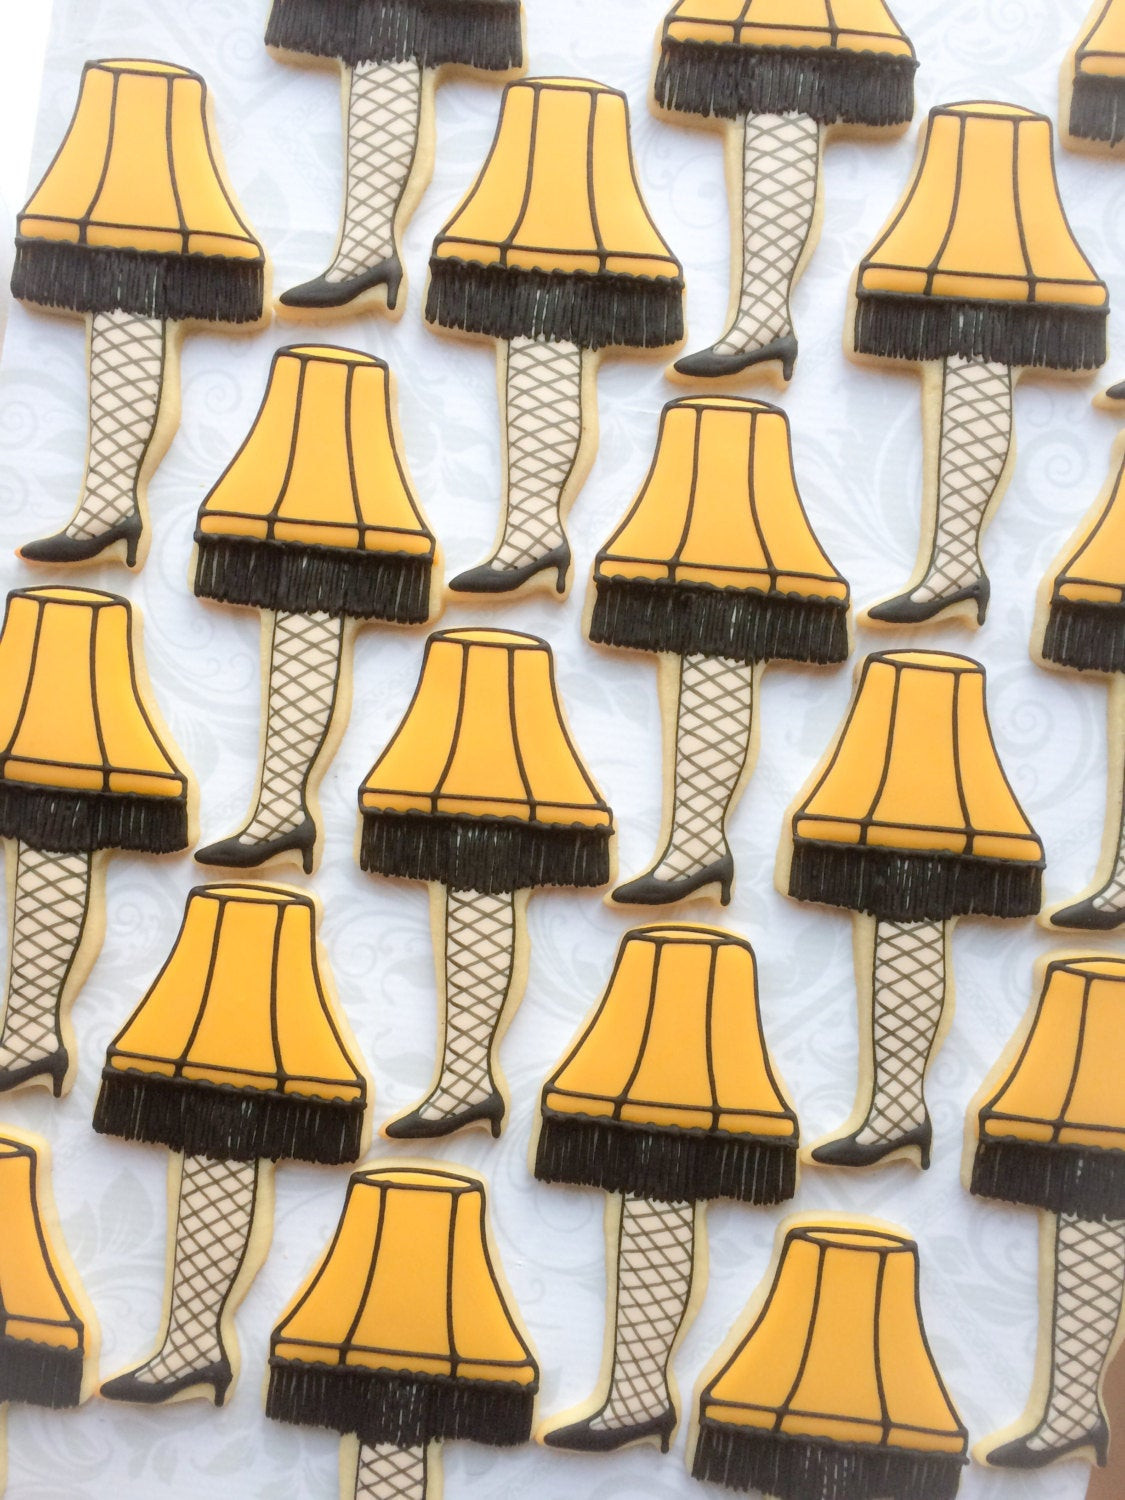 Christmas Story Leg Lamp Cookies  A Christmas Story Leg Lamp Cookies e Dozen Decorated